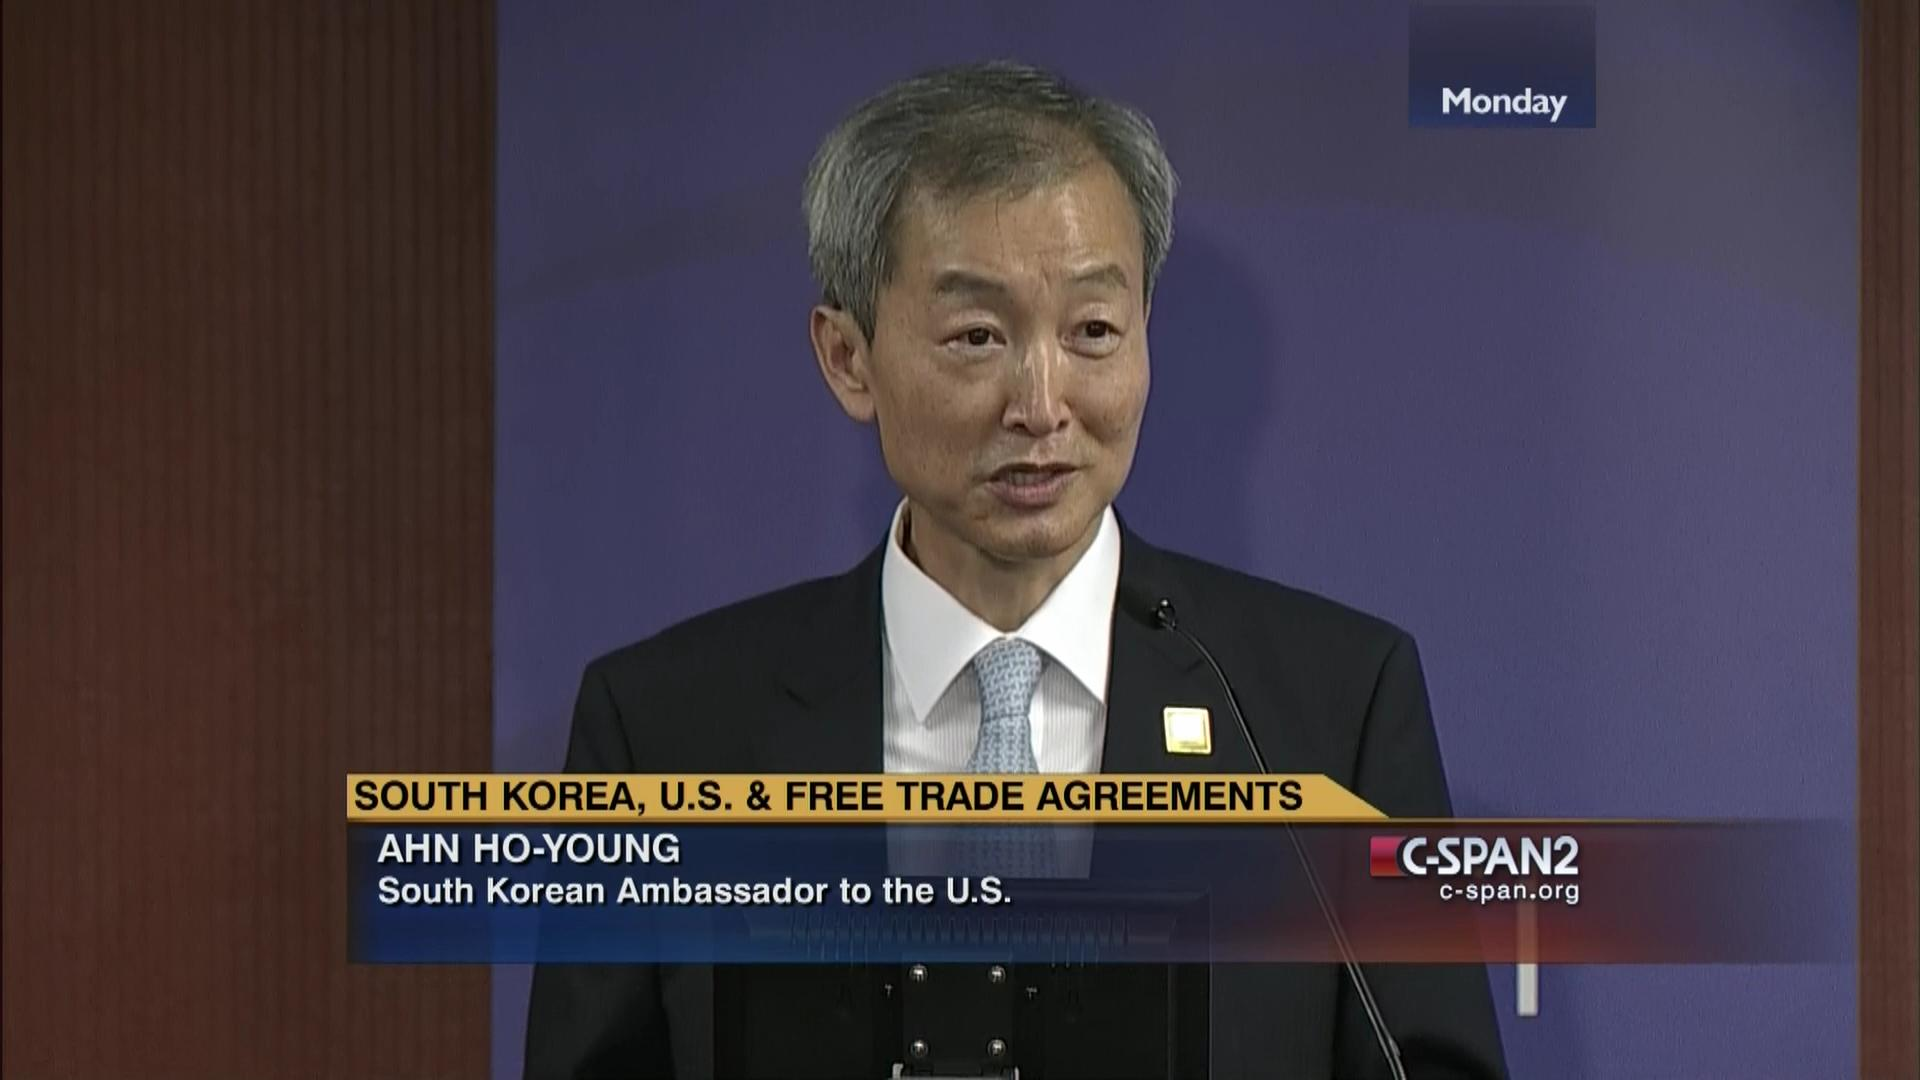 South Korea Free Trade Agreements Part 1 May 18 2015 Video C